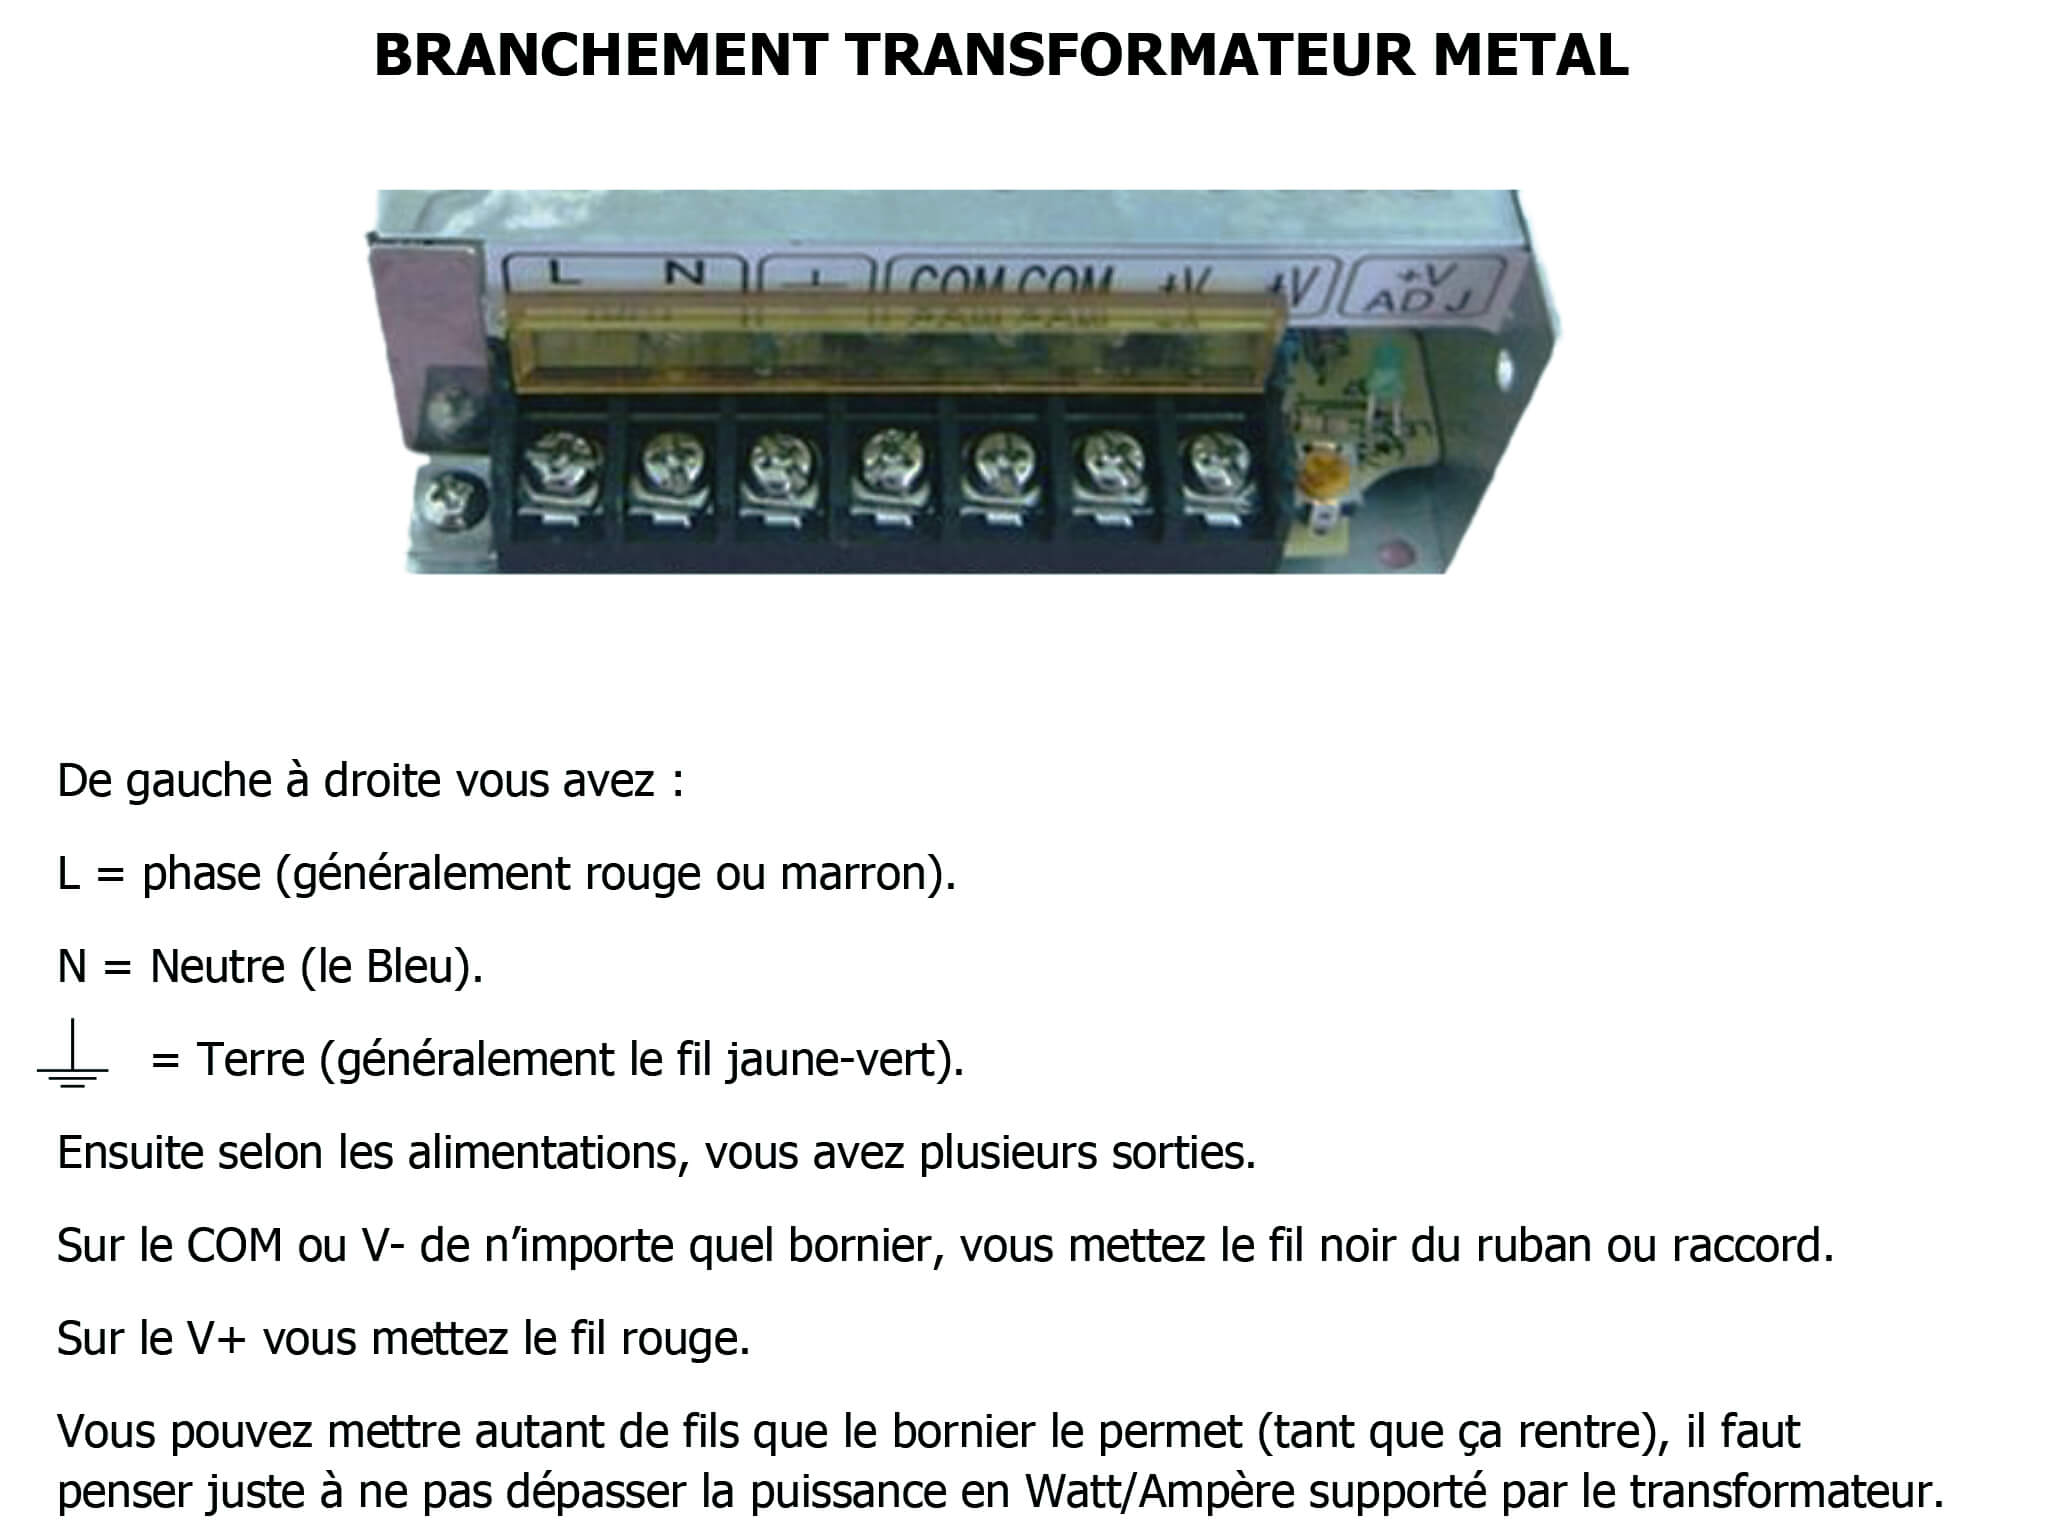 Branchement transformateur metal